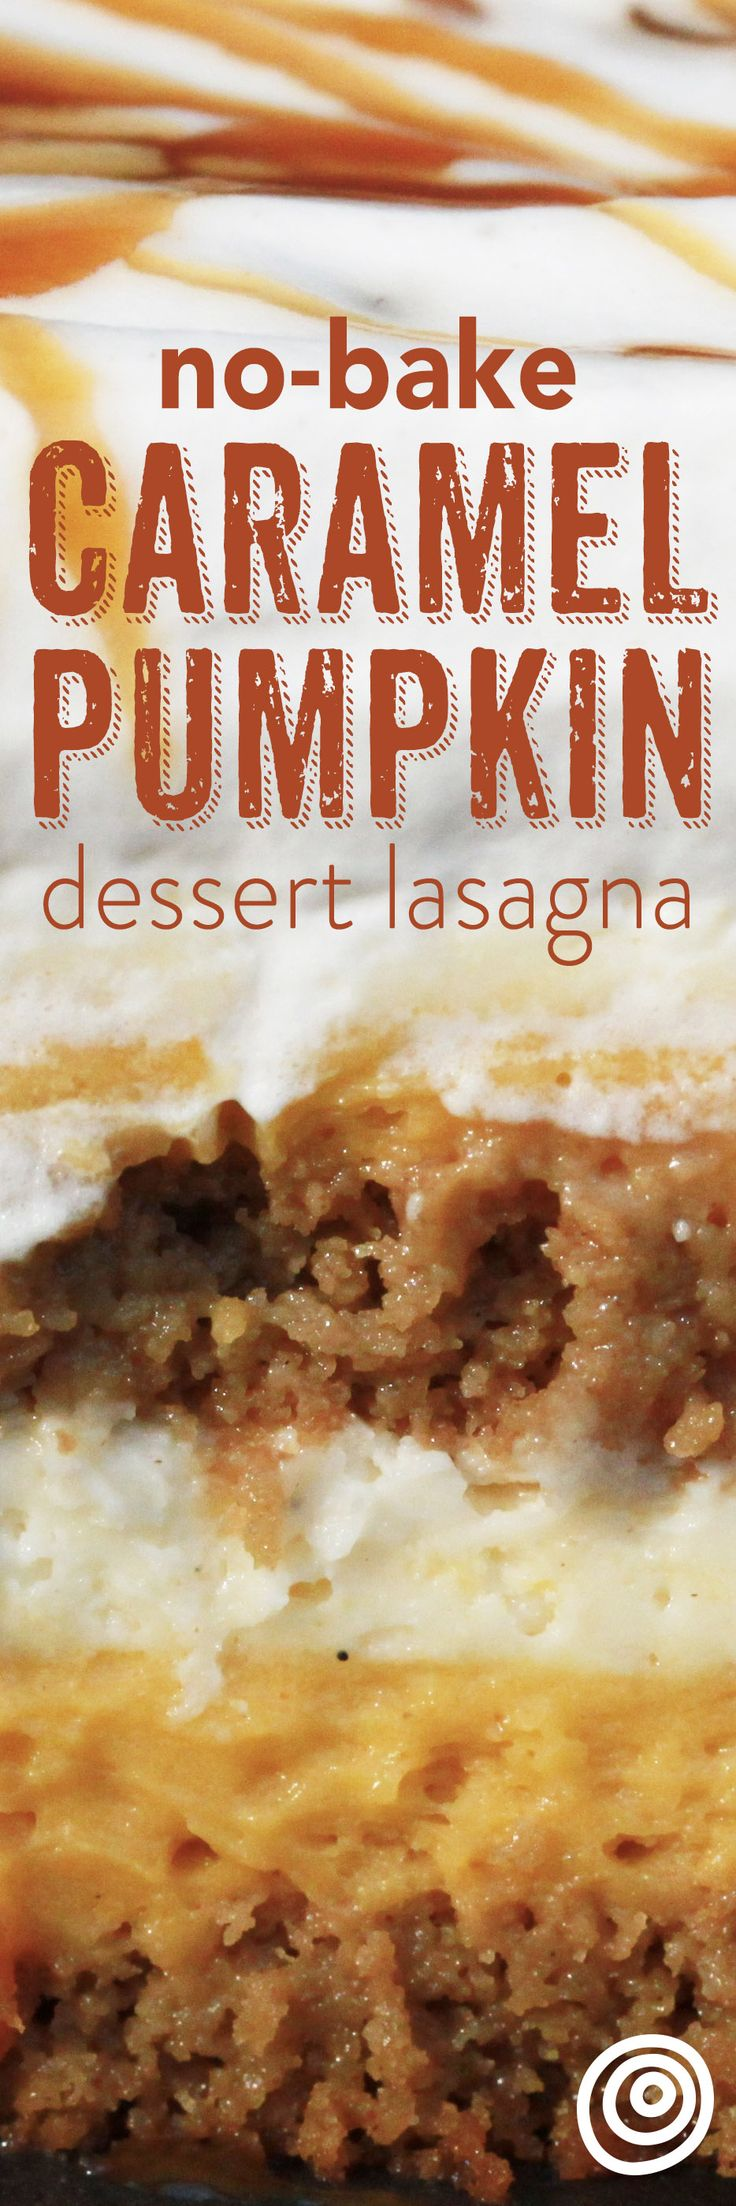 Caramel Pumpkin Dessert Lasagna Recipe. This is the modern take on trifle, and a more fun name for icebox cake recipes! This no bake fall dessert is an EASY, cold, make-ahead treat. This includes gingersnap cookies, spiced cream cheese mousse, and pumpkin pudding enrobed in a spiced whipped cream and caramel sauce. No desserts are better to make for (or with!) kids.